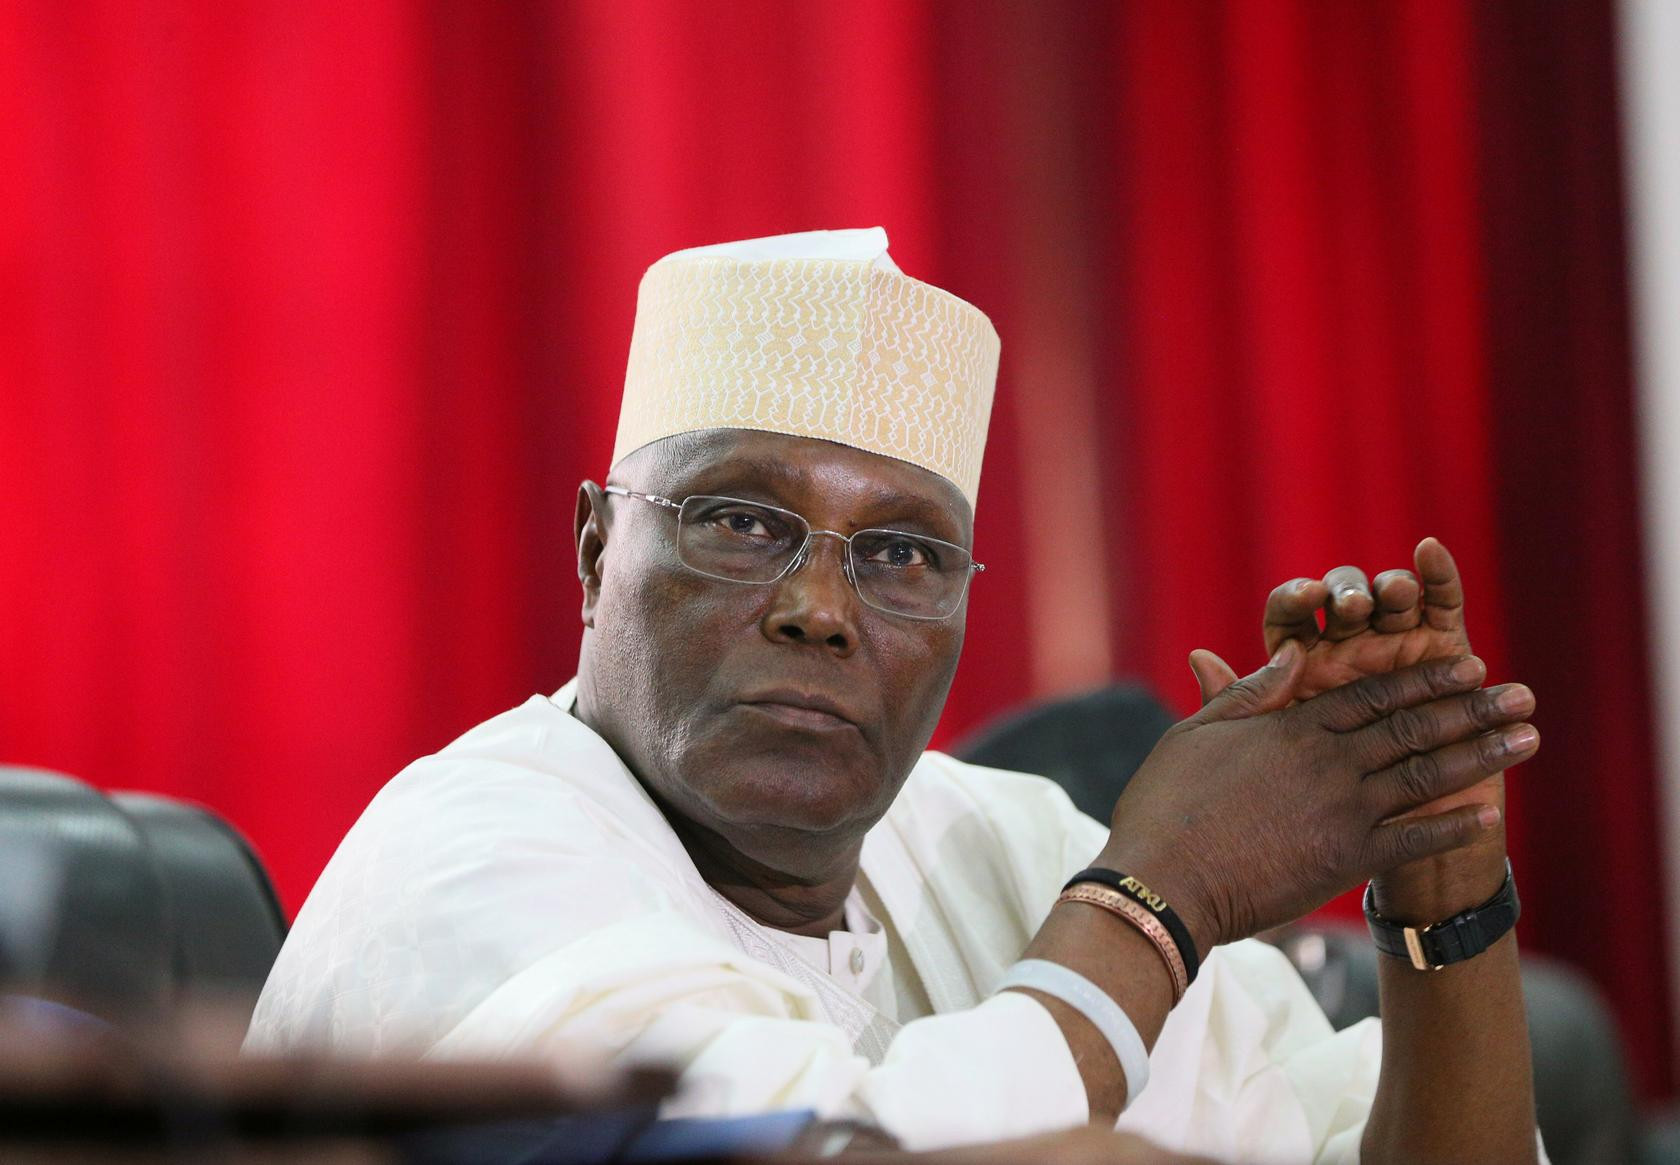 Parents and community, need to pay close attention for early signs of depression among our young people, particularly in this depressing times – Atiku reacts to high rate of suicide